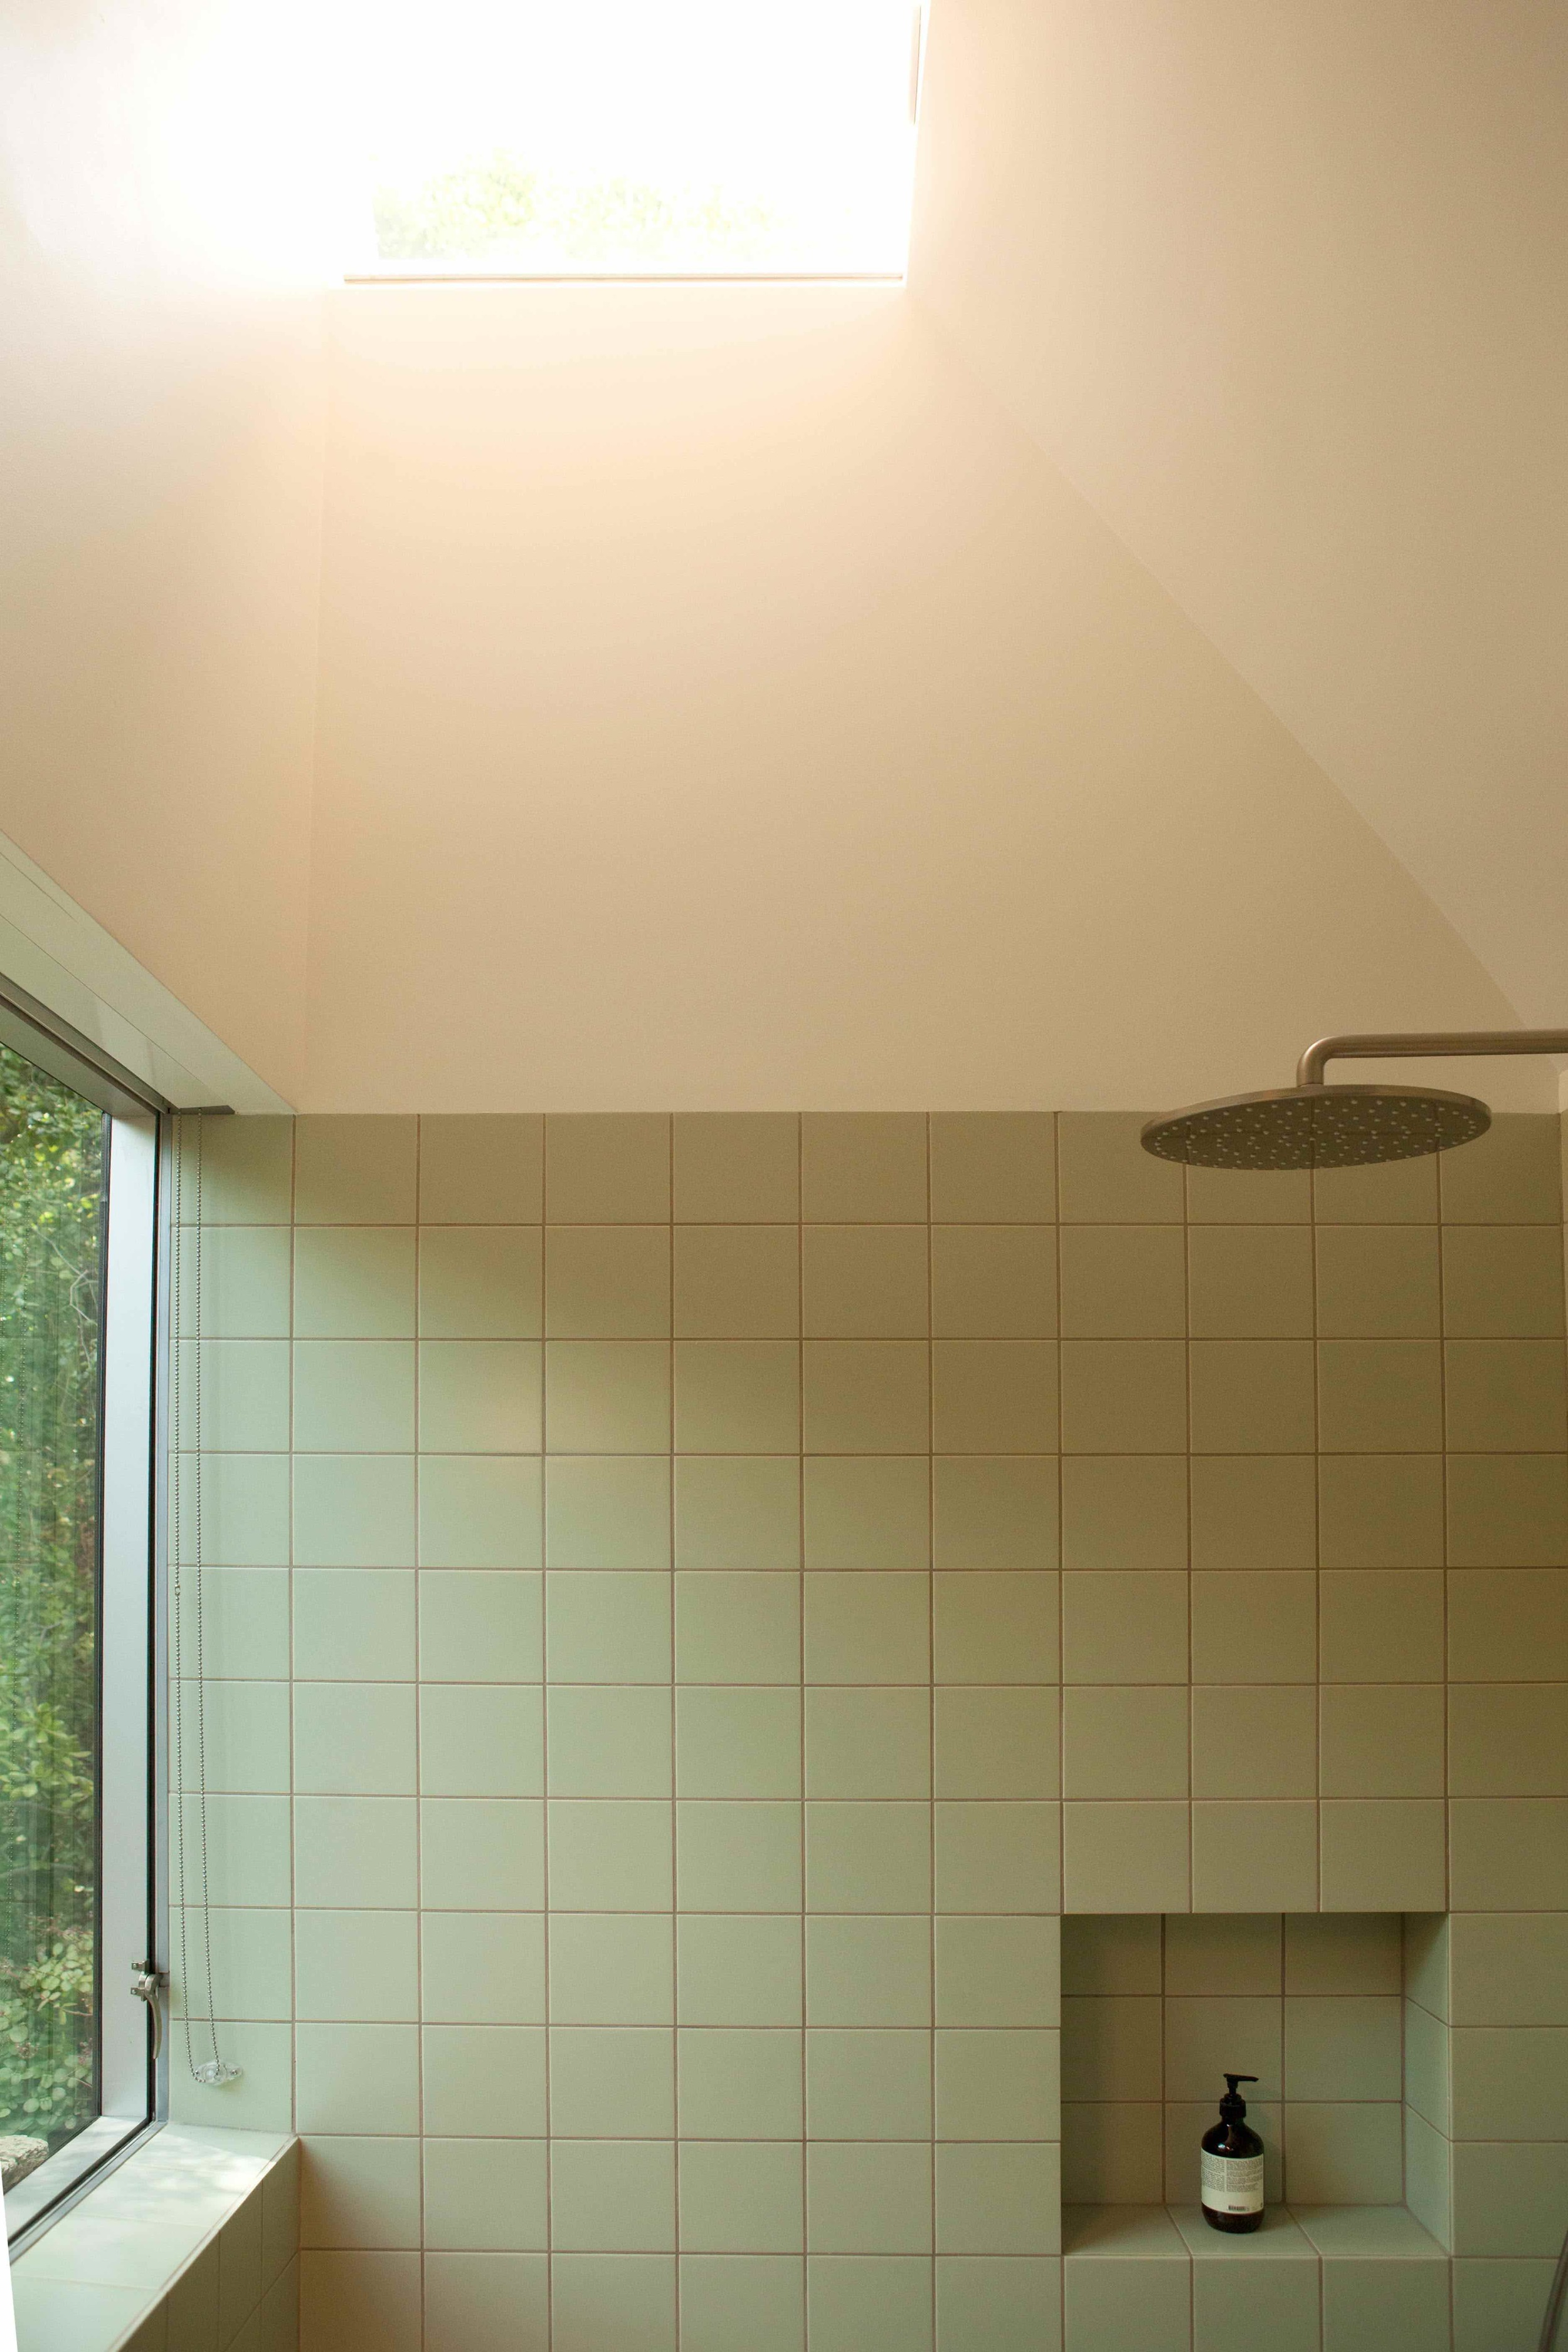 Simple clean Mosa tile in an earthy green shade wraps the lower half of the room.